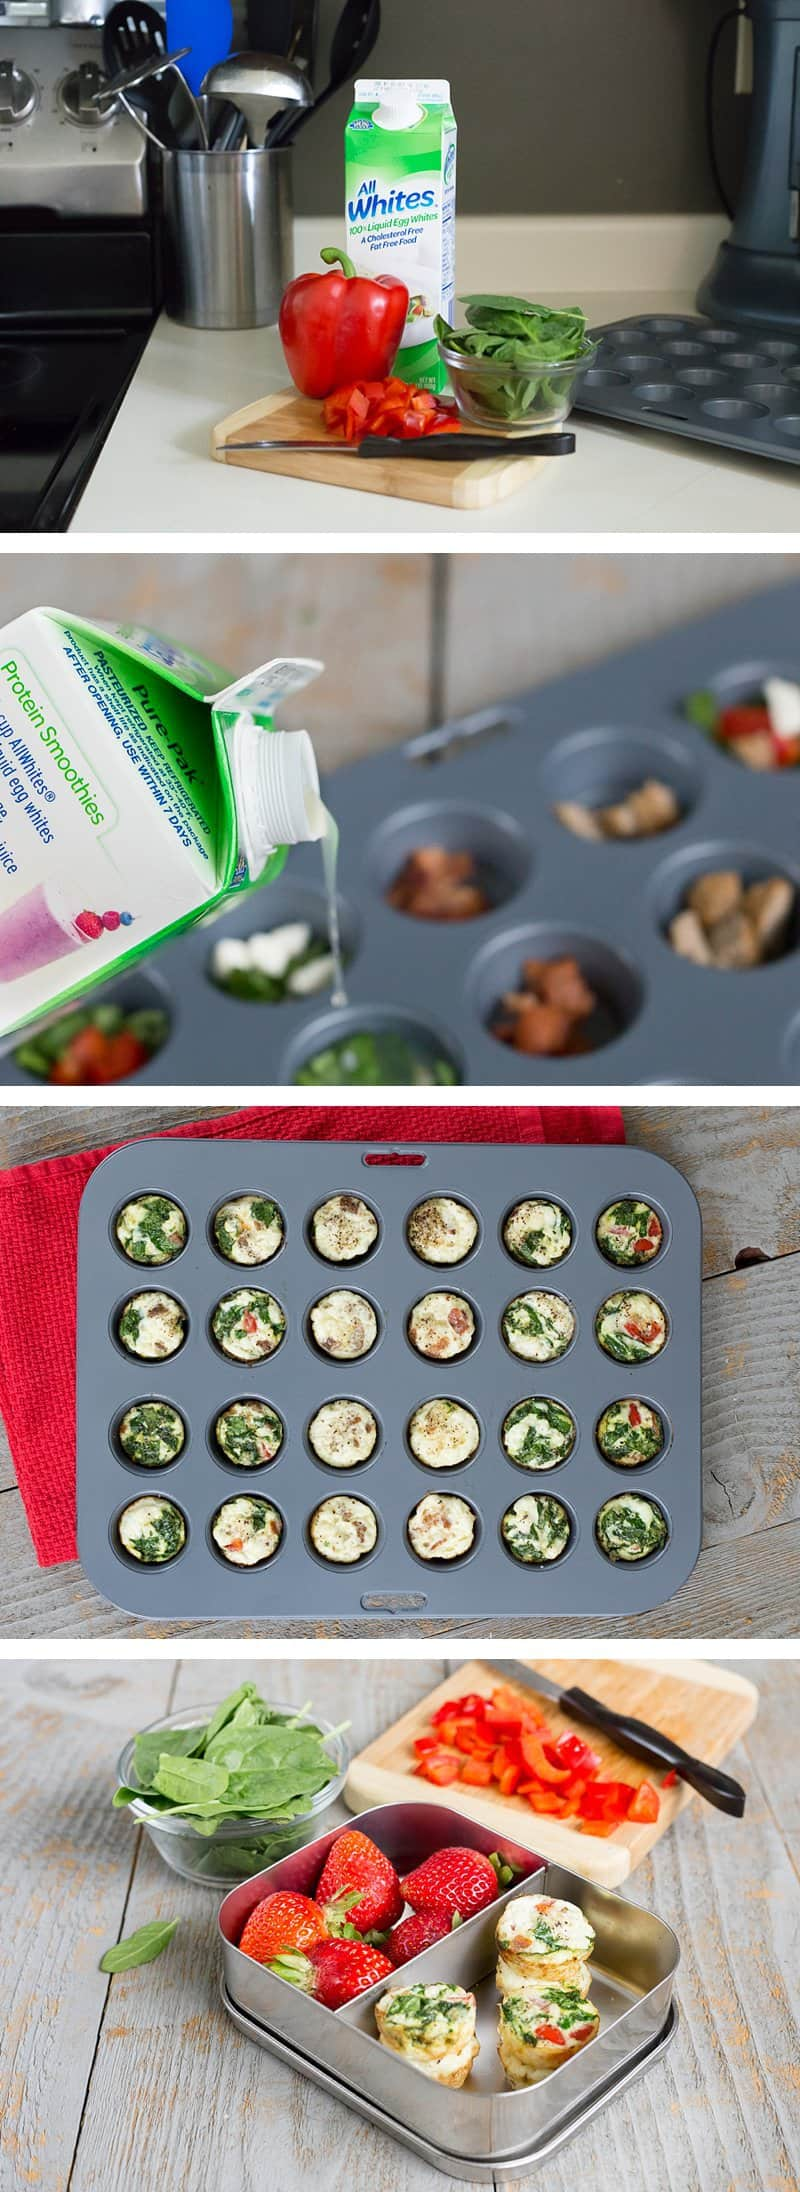 This healthy Red Pepper & Spinach Egg White Muffins recipe is packed full of protein, gluten-free, paleo-friendly and a quick on-the-go breakfast snack. You can make one batch to last a full week. *Insanely easy way to start your day with eggs